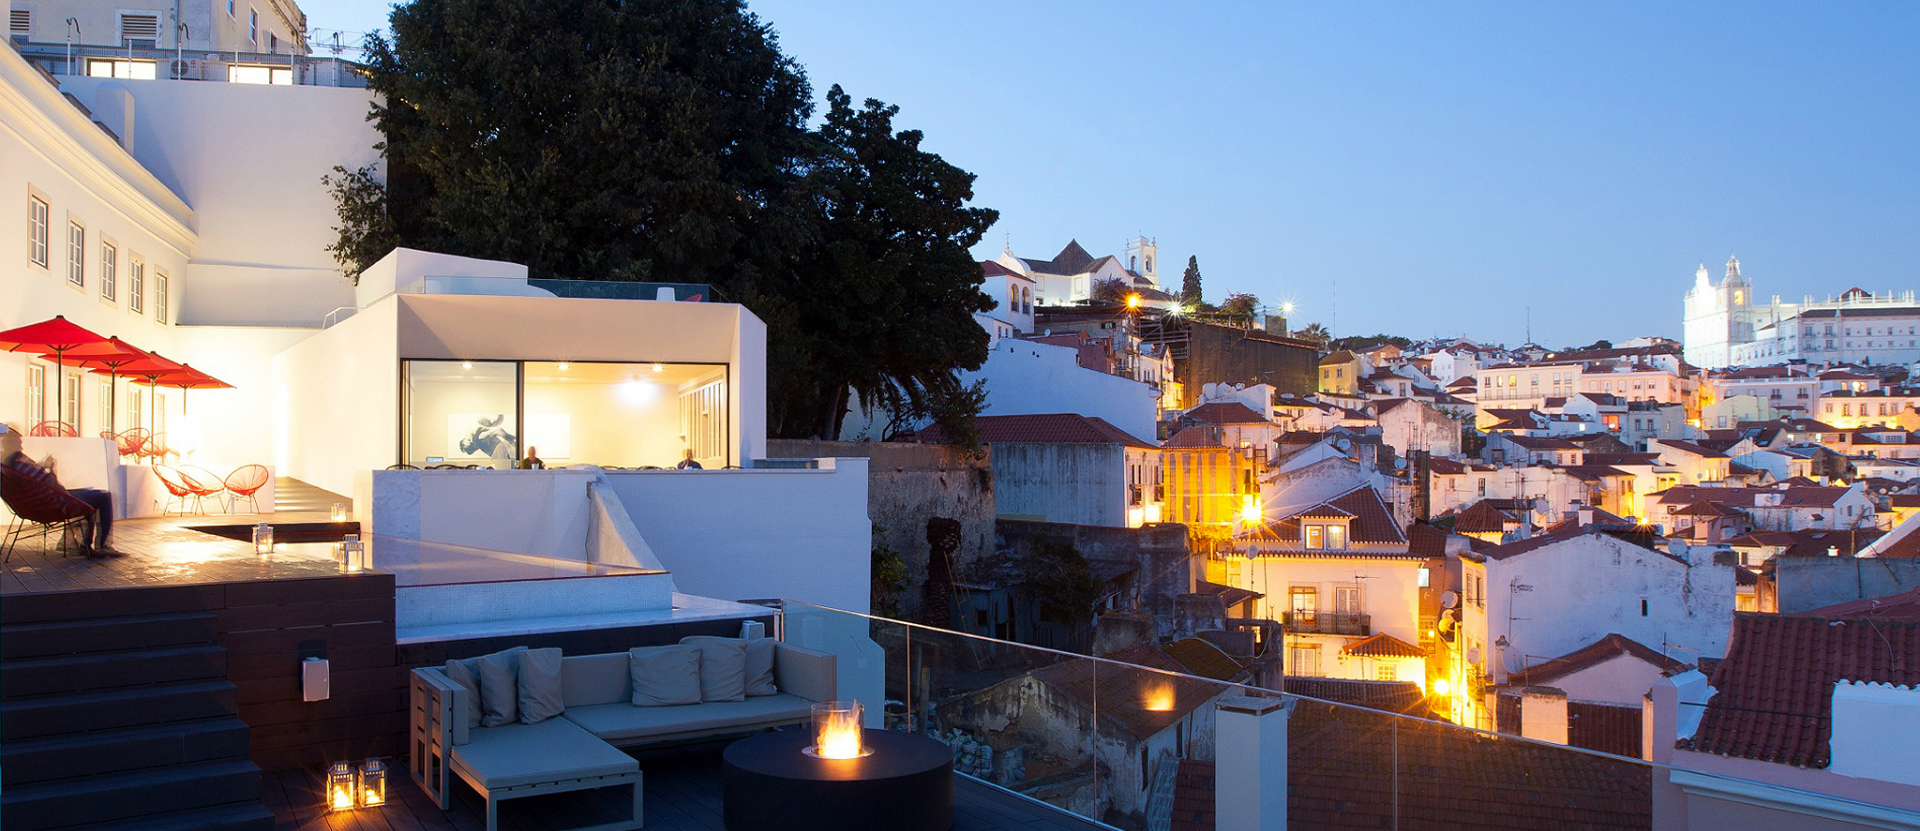 Best rooftops in Portugal: Memmo Alfama what to do in lisbon What To Do In Lisbon: 48 Hours In The Capital Carrocel 2 88